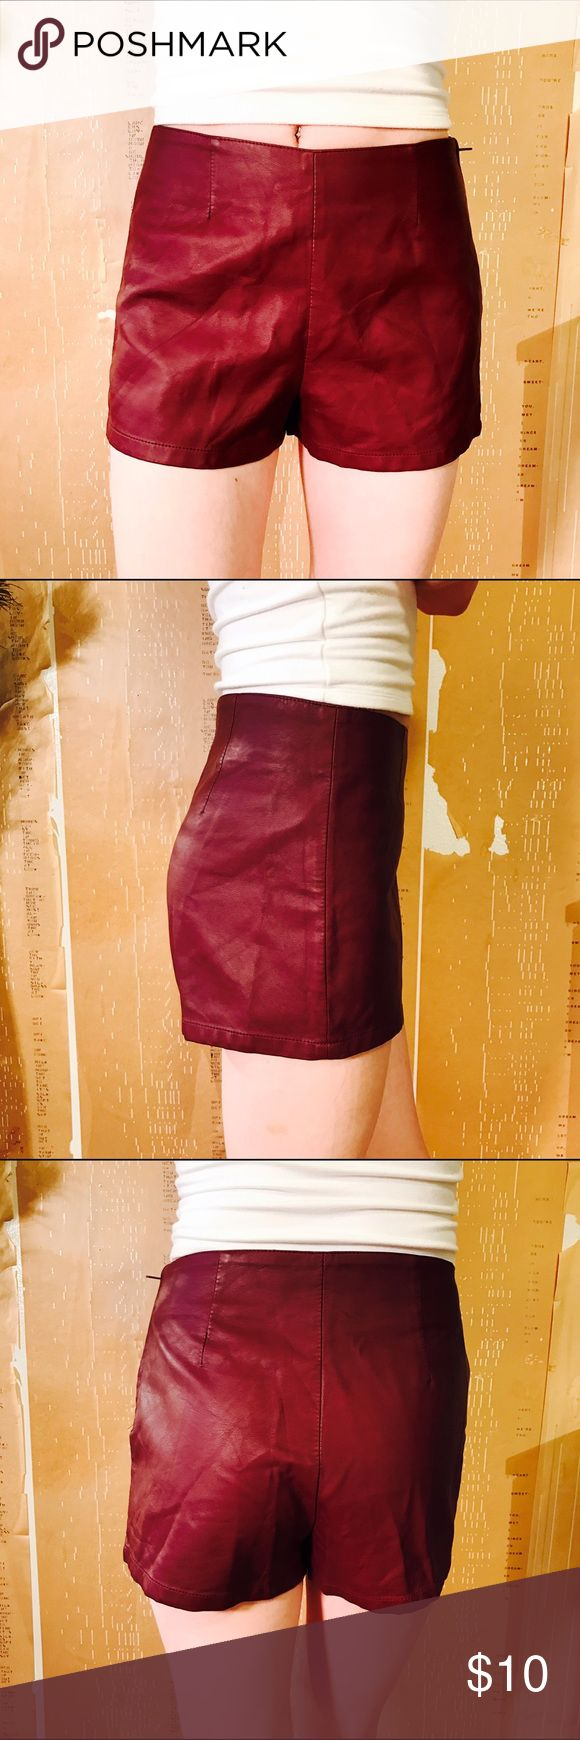 """FOREVER 21 VEGAN FAUX LEATHER MAROON SHORTS #407 FOREVER 21, faux leather short, lined. Burgundy.  CONDITION: EUC No issues.  🎁 SHIPS WITHIN 24HRS  CHEST:  WAIST: 27"""" LENGTH: 11"""" INSEAM: 1.5"""" *All measurements taken while item is laid flat (doubled when necessary) and measured across the front  MATERIAL: Polyester  STRETCH: minimal INSTAGRAM @ORNAMENTALSTONE 🚫Trading Forever 21 Shorts"""